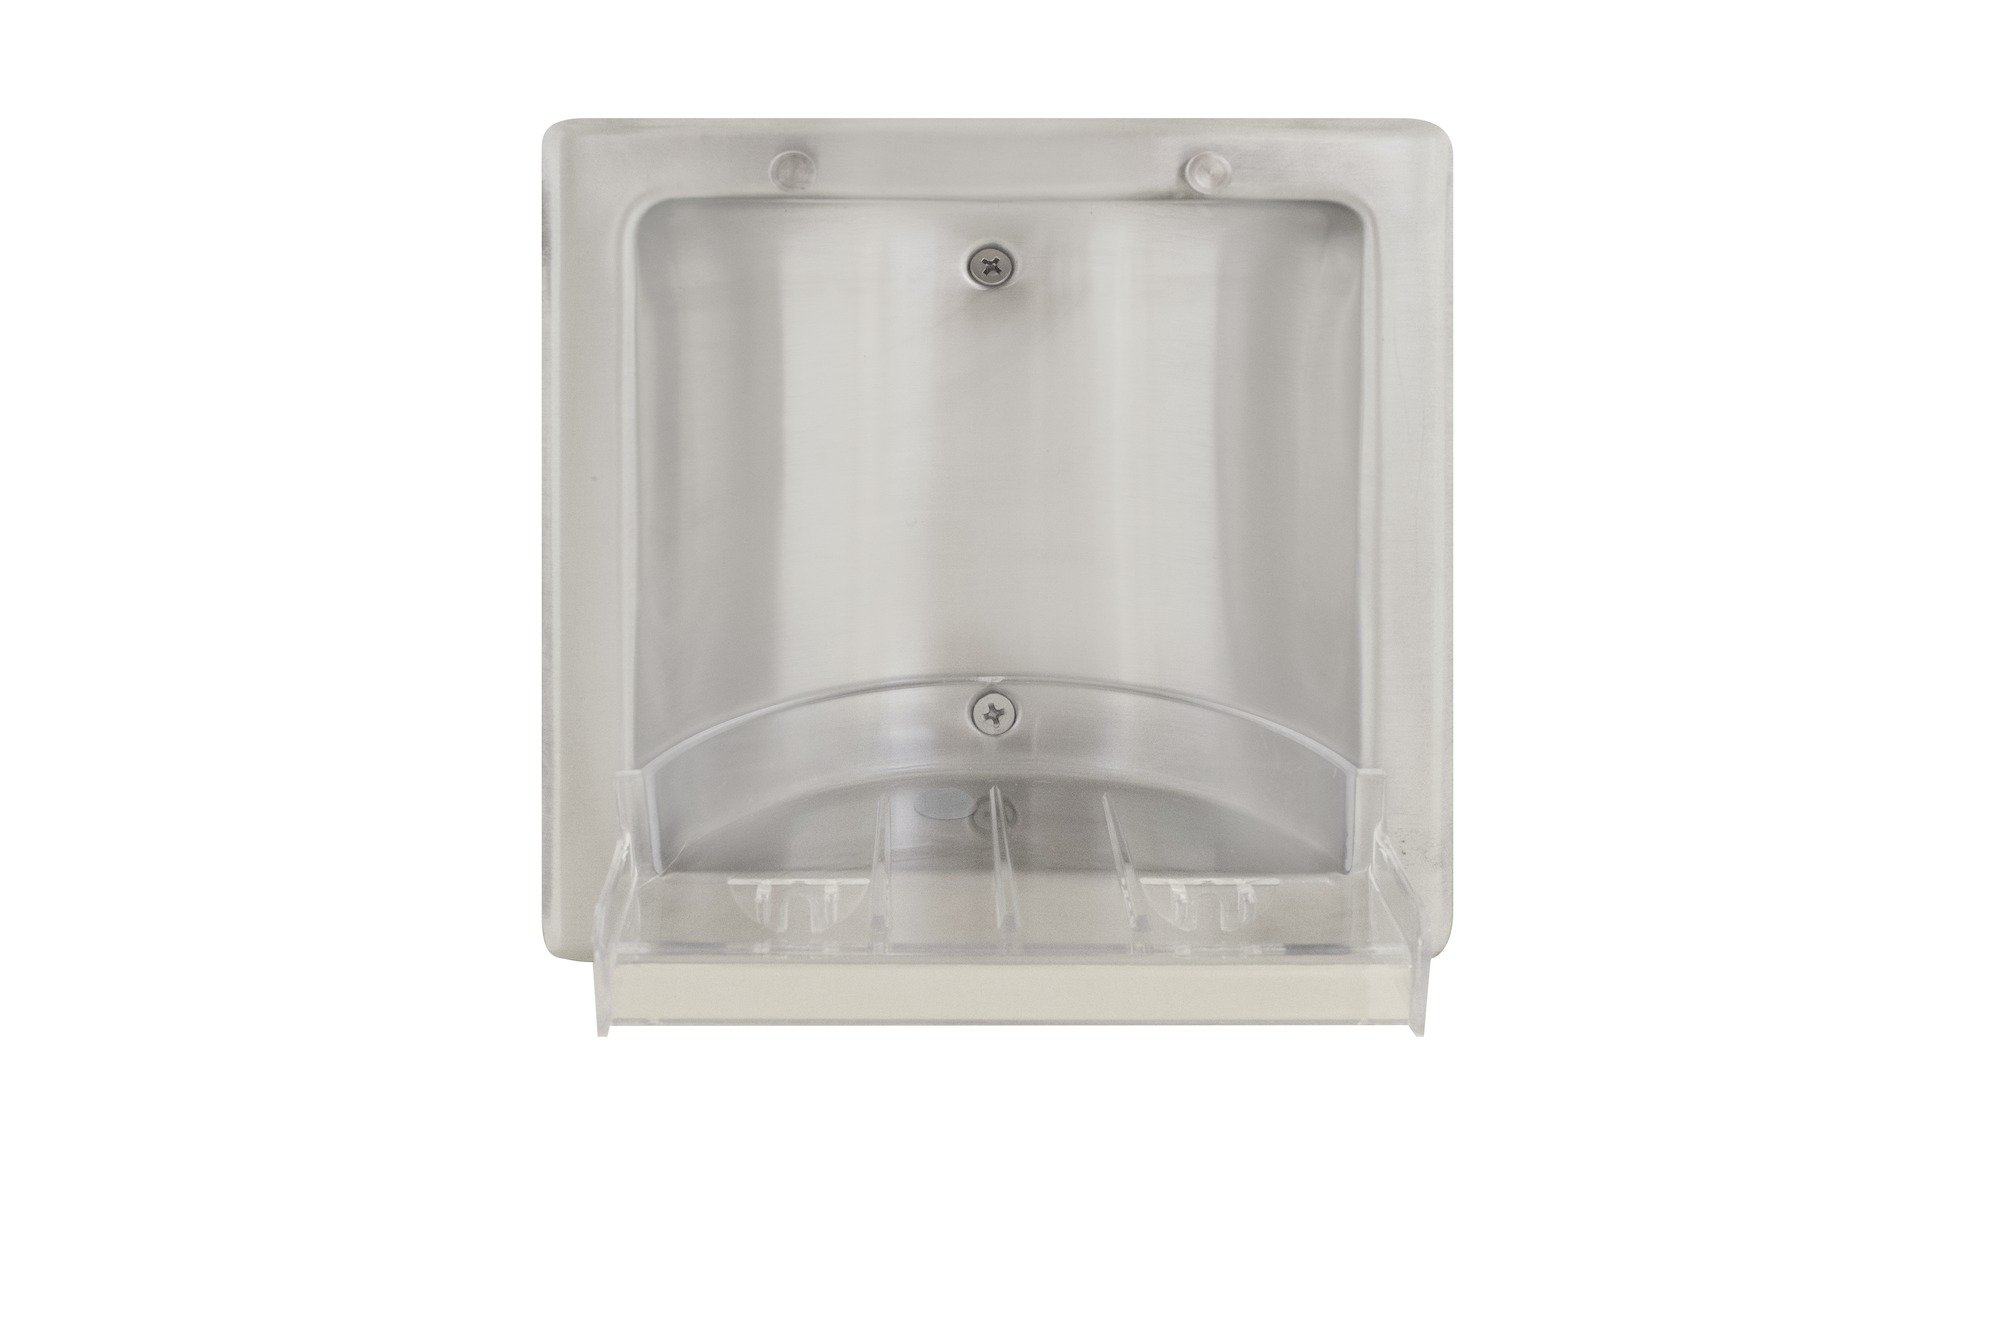 Recessed Soap Dish With Removable Plastic Tray 9353